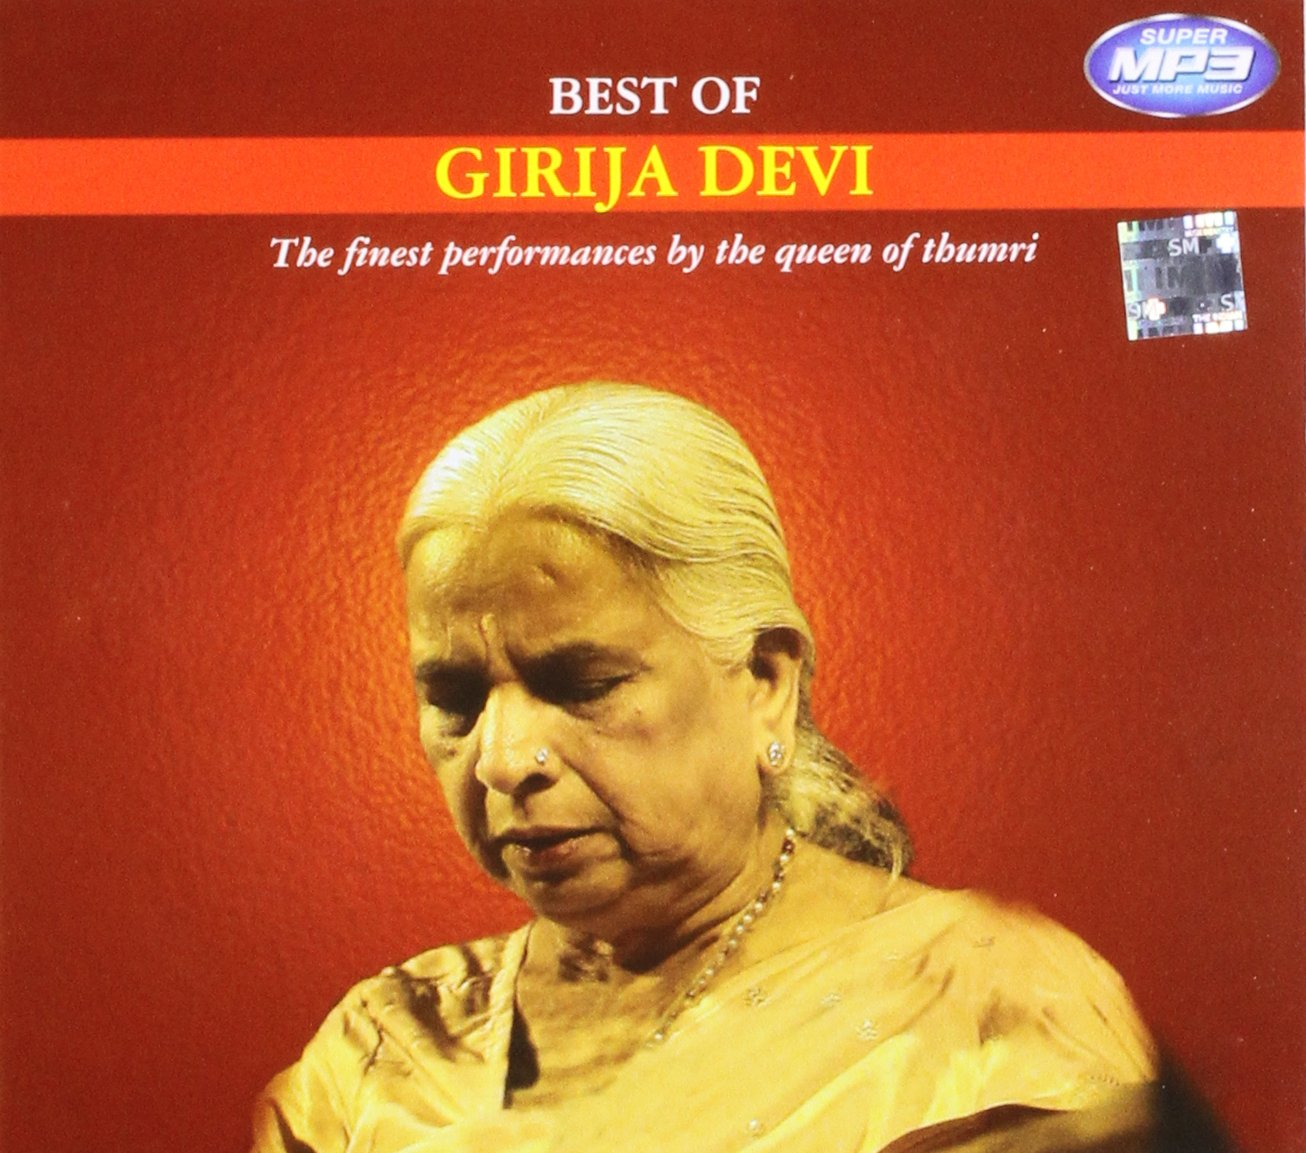 Best of Girija Devi